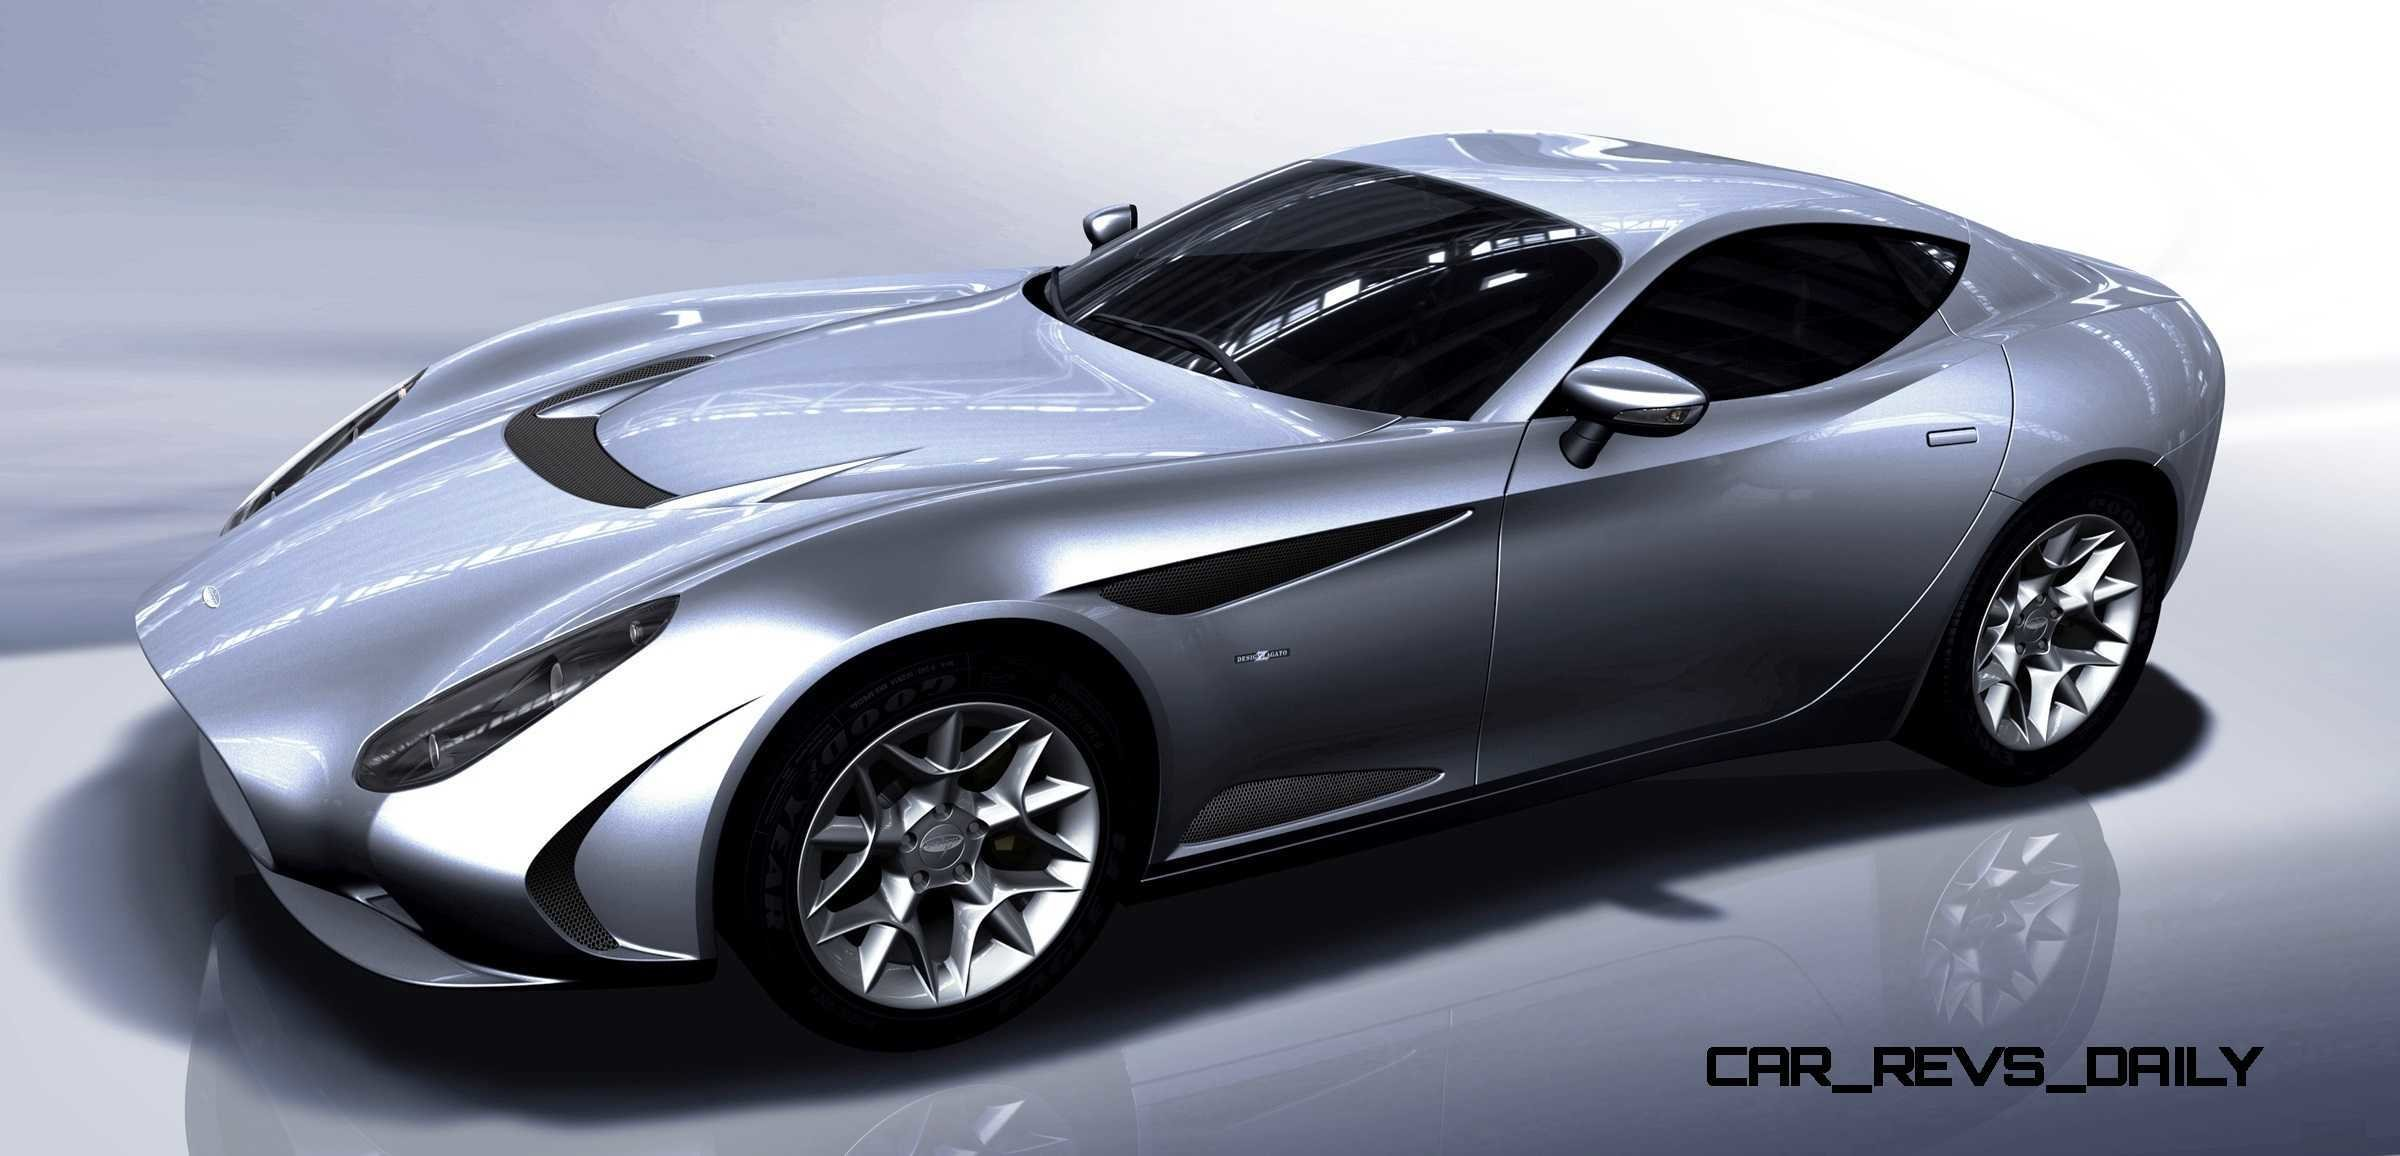 New 2012 Ac 378Gt By Zagato On This Month